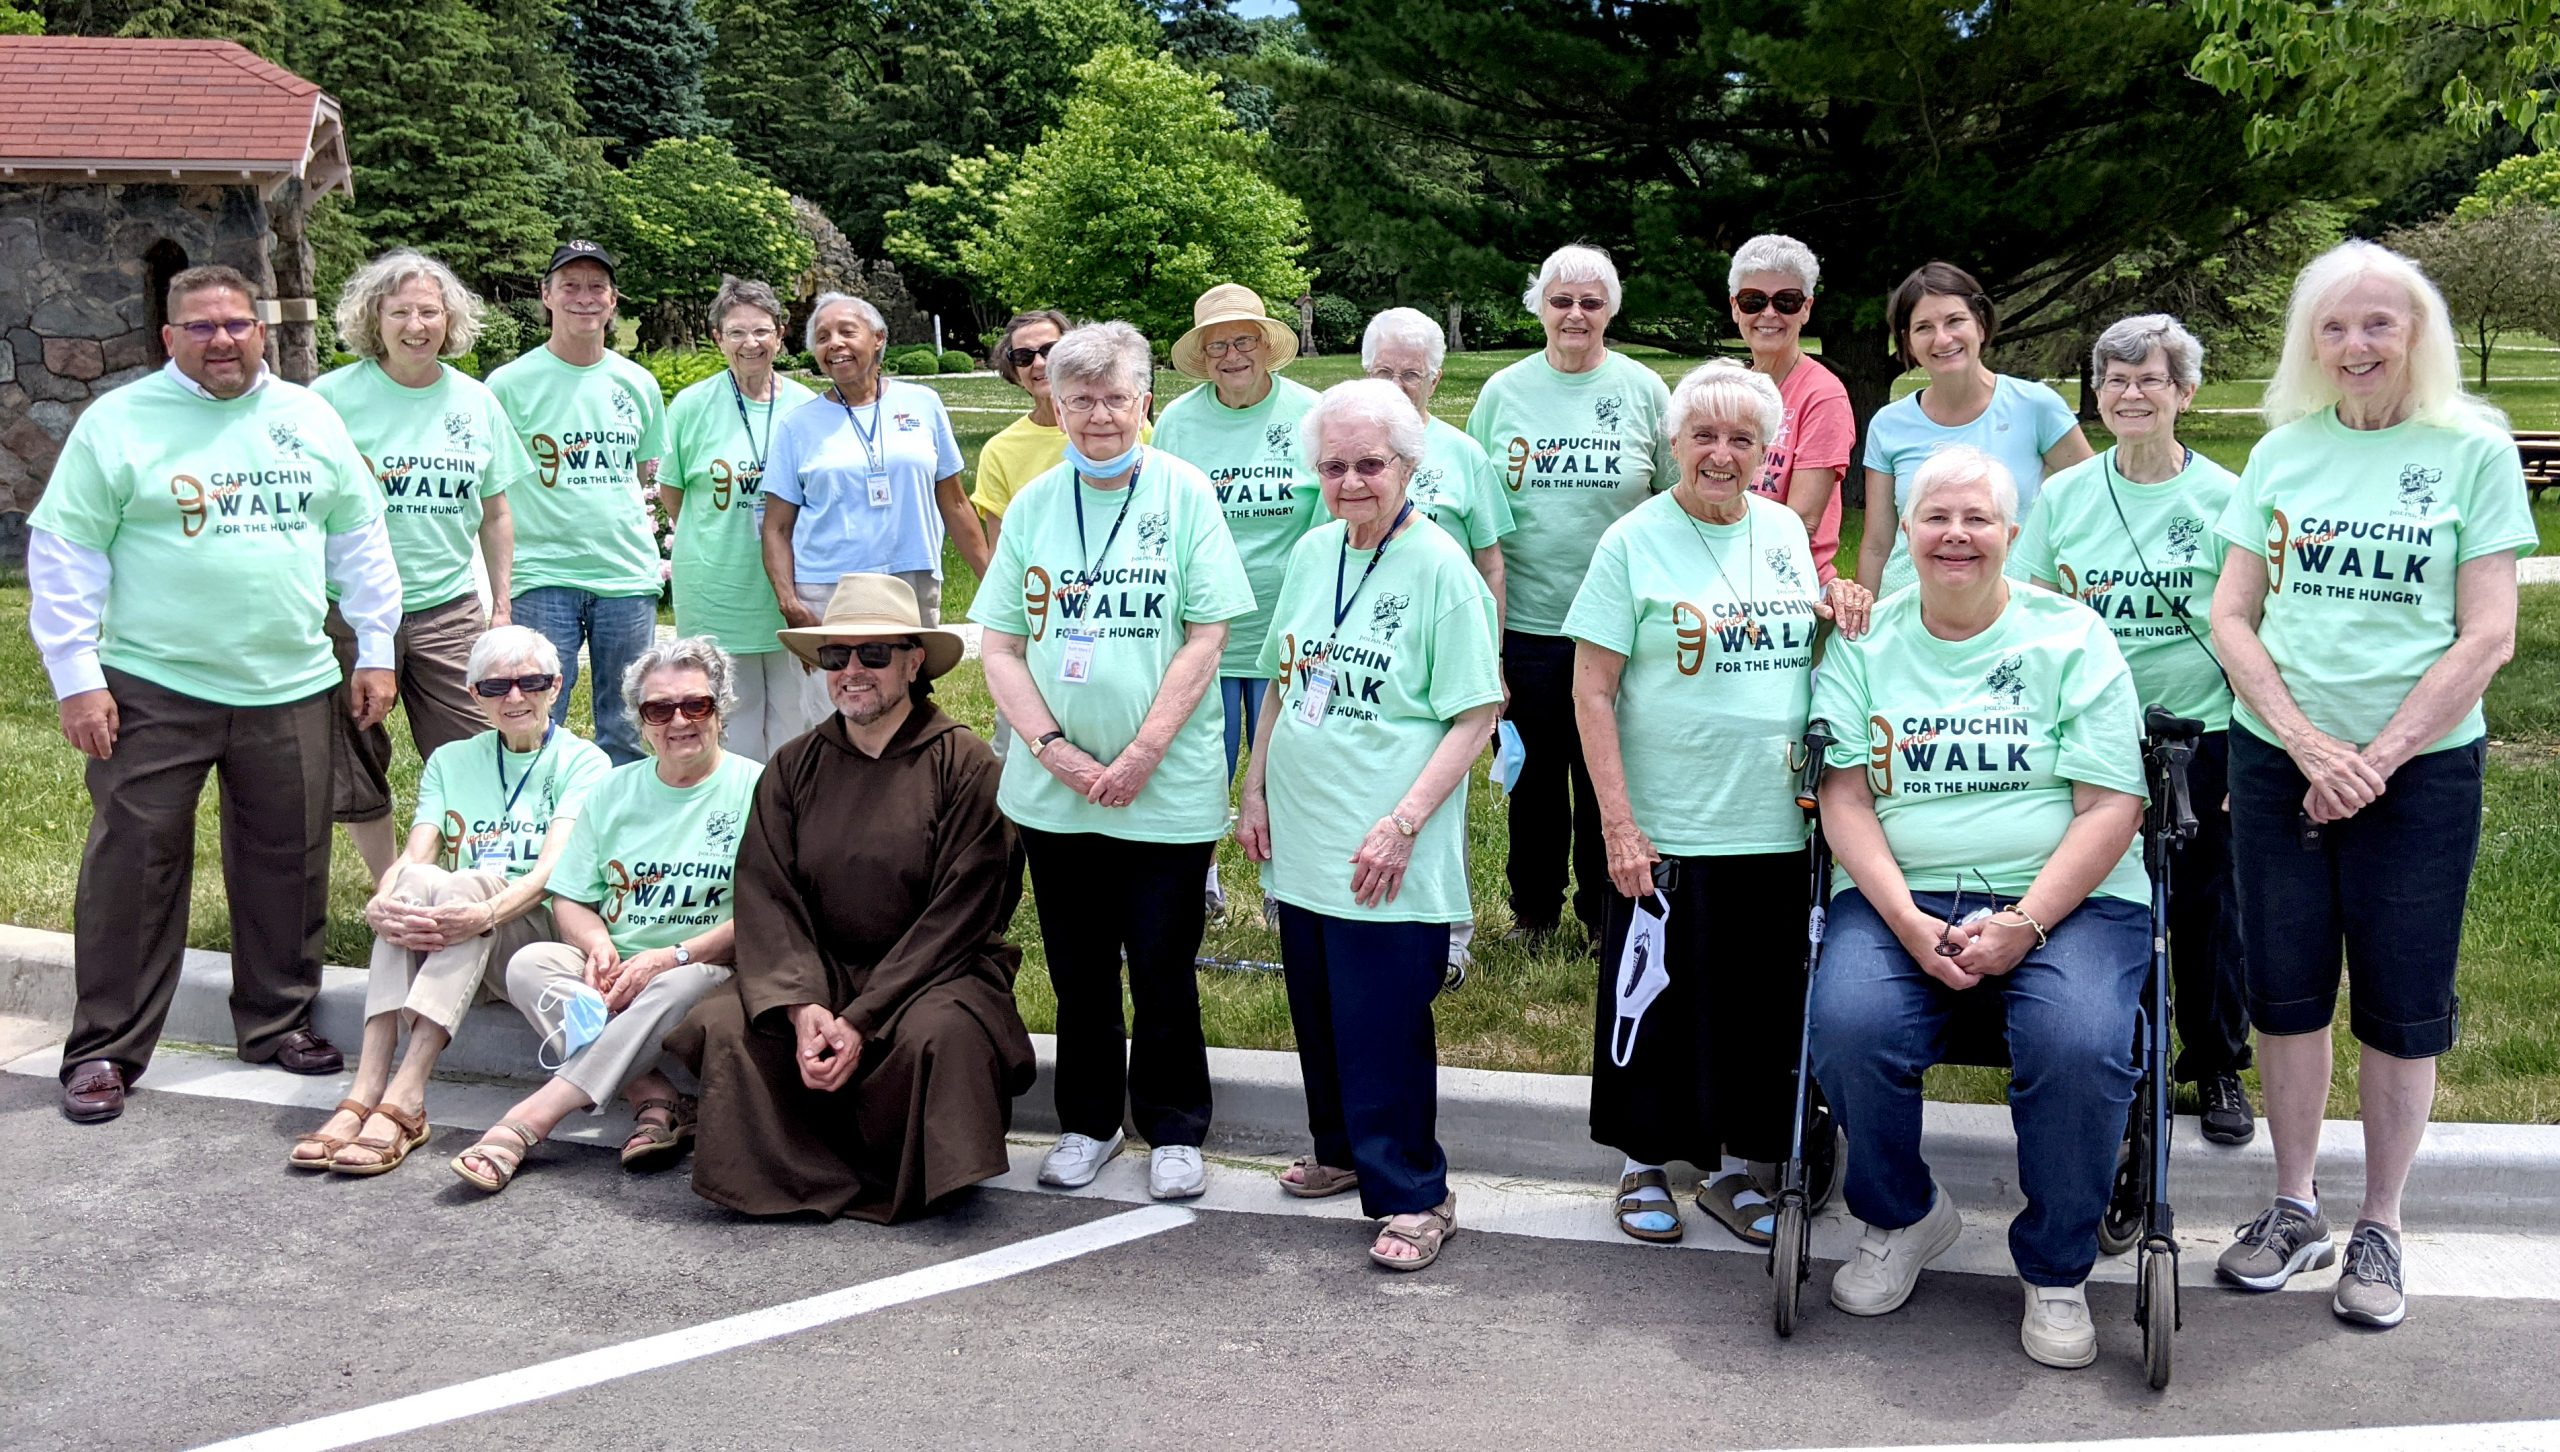 St. Ben's Walk for Hungry participants